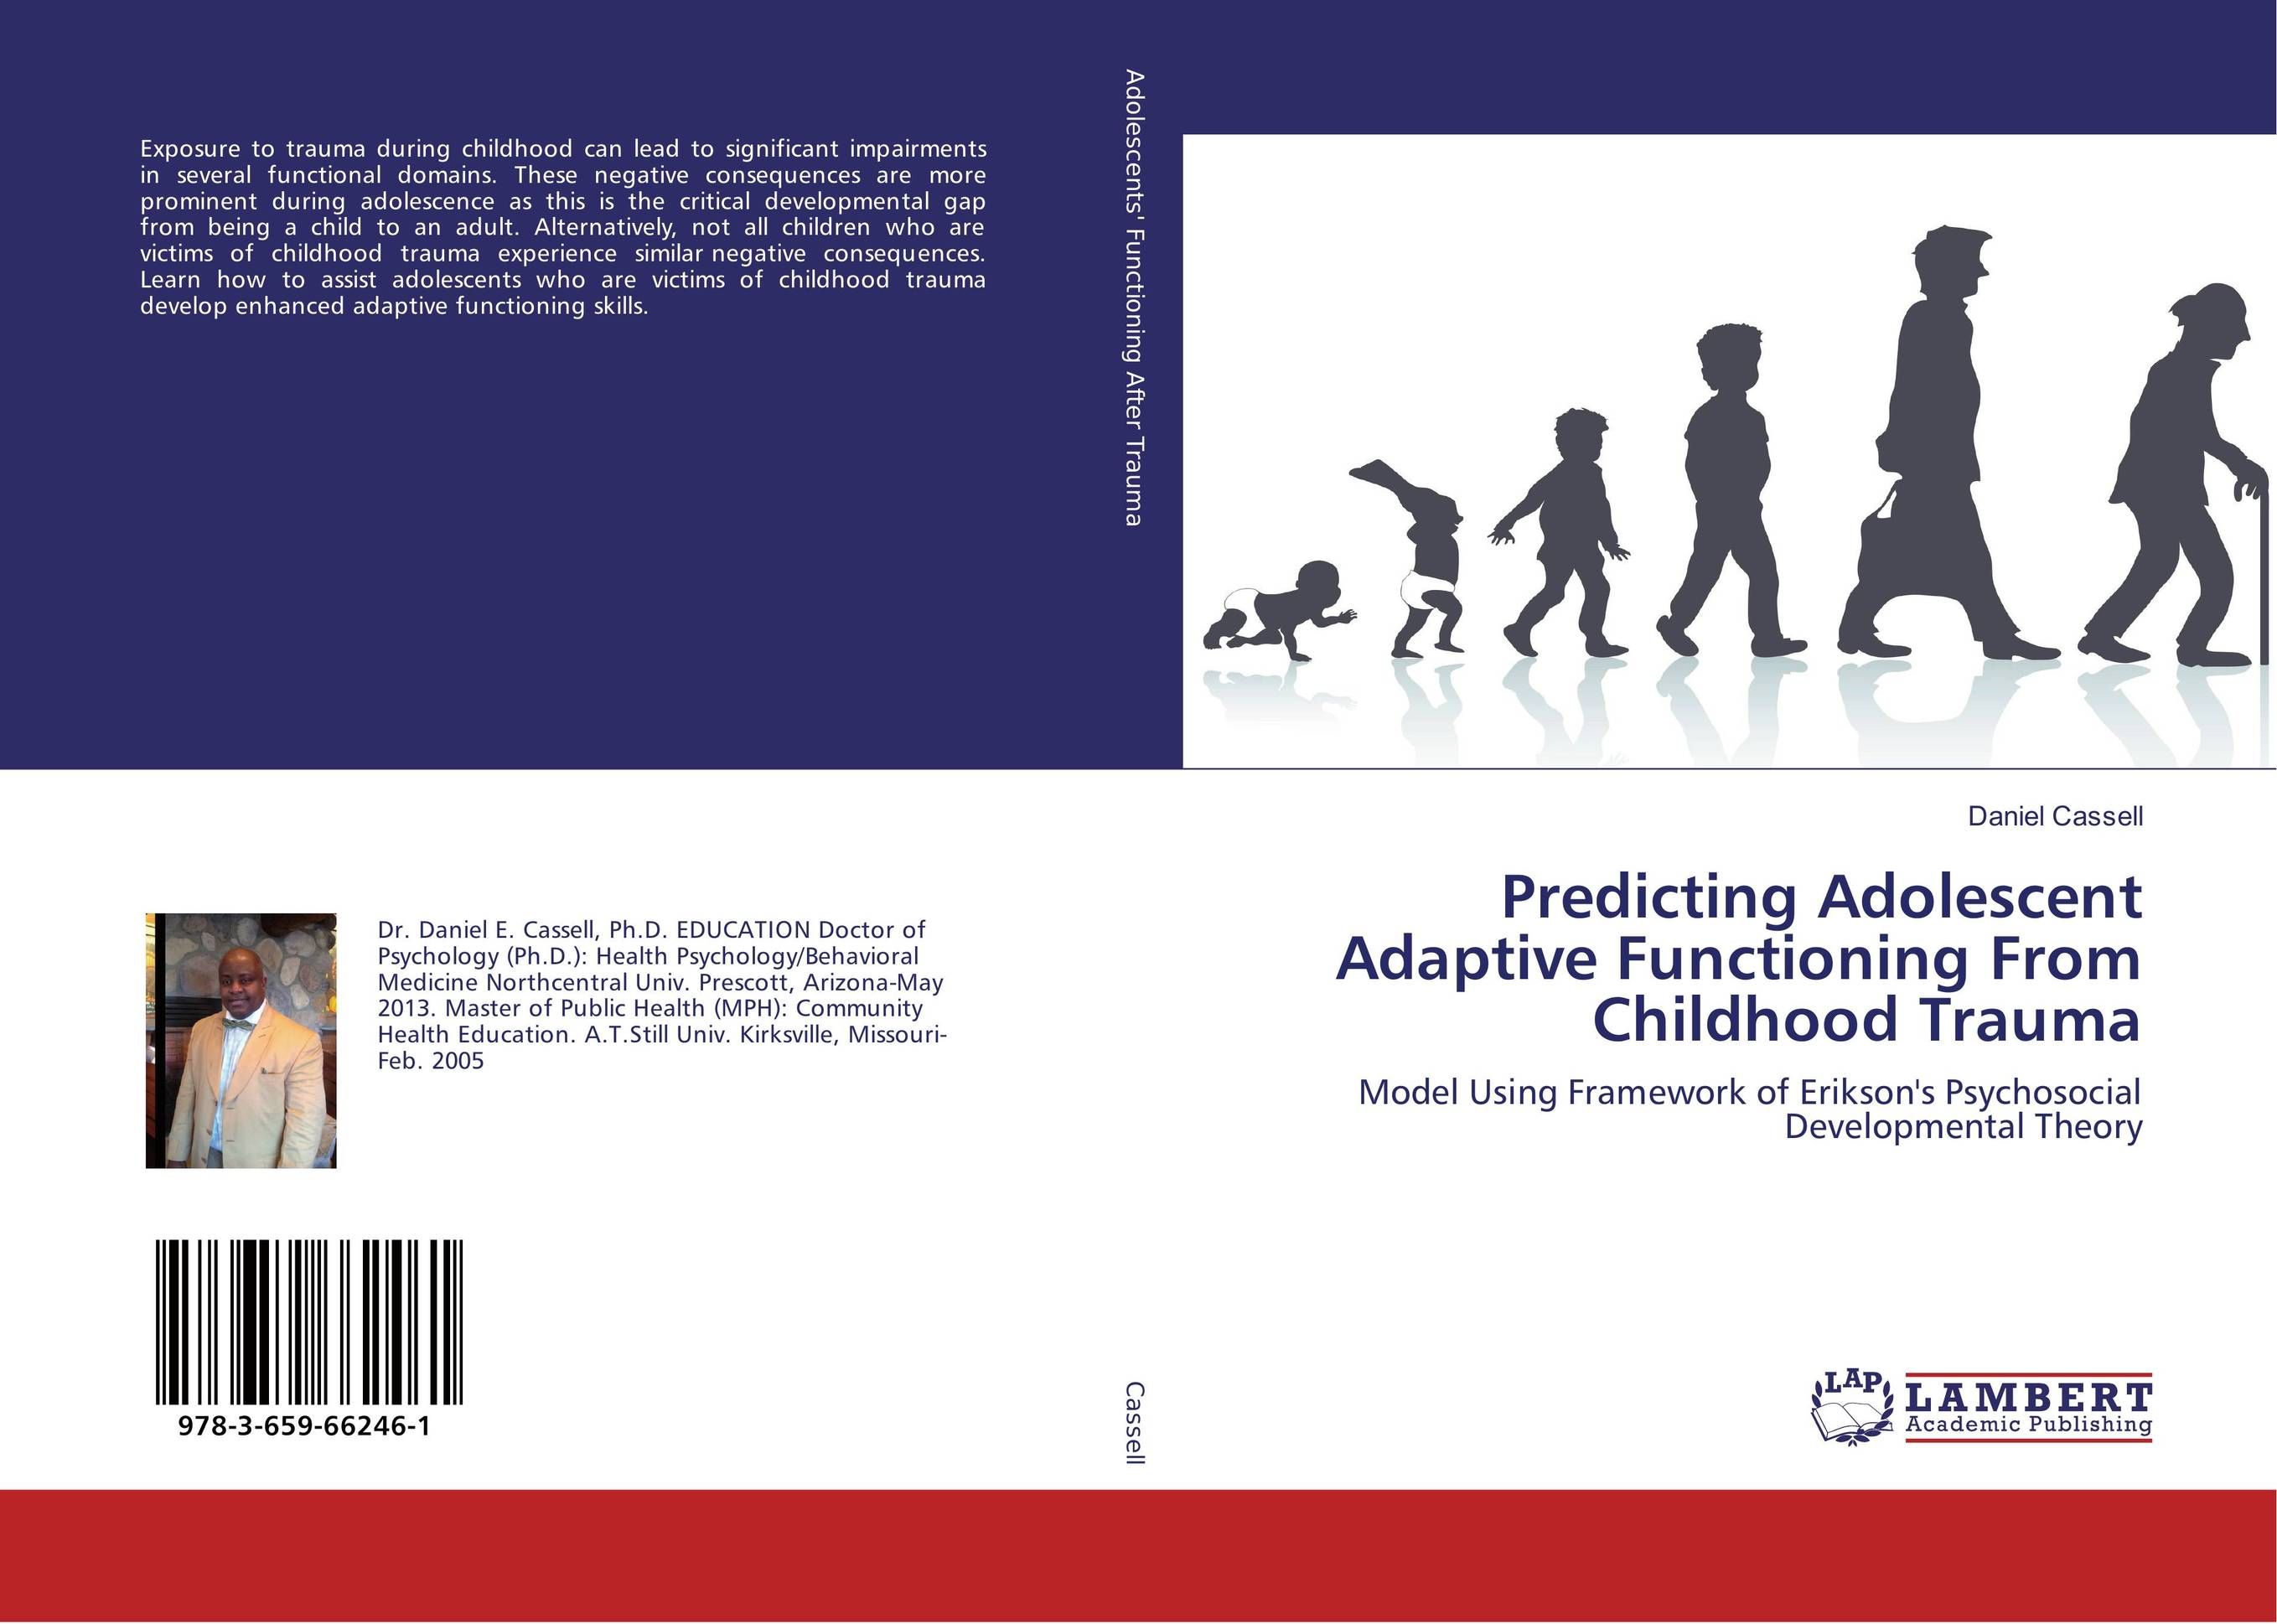 Predicting Adolescent Adaptive Functioning From Childhood Trauma adolescent